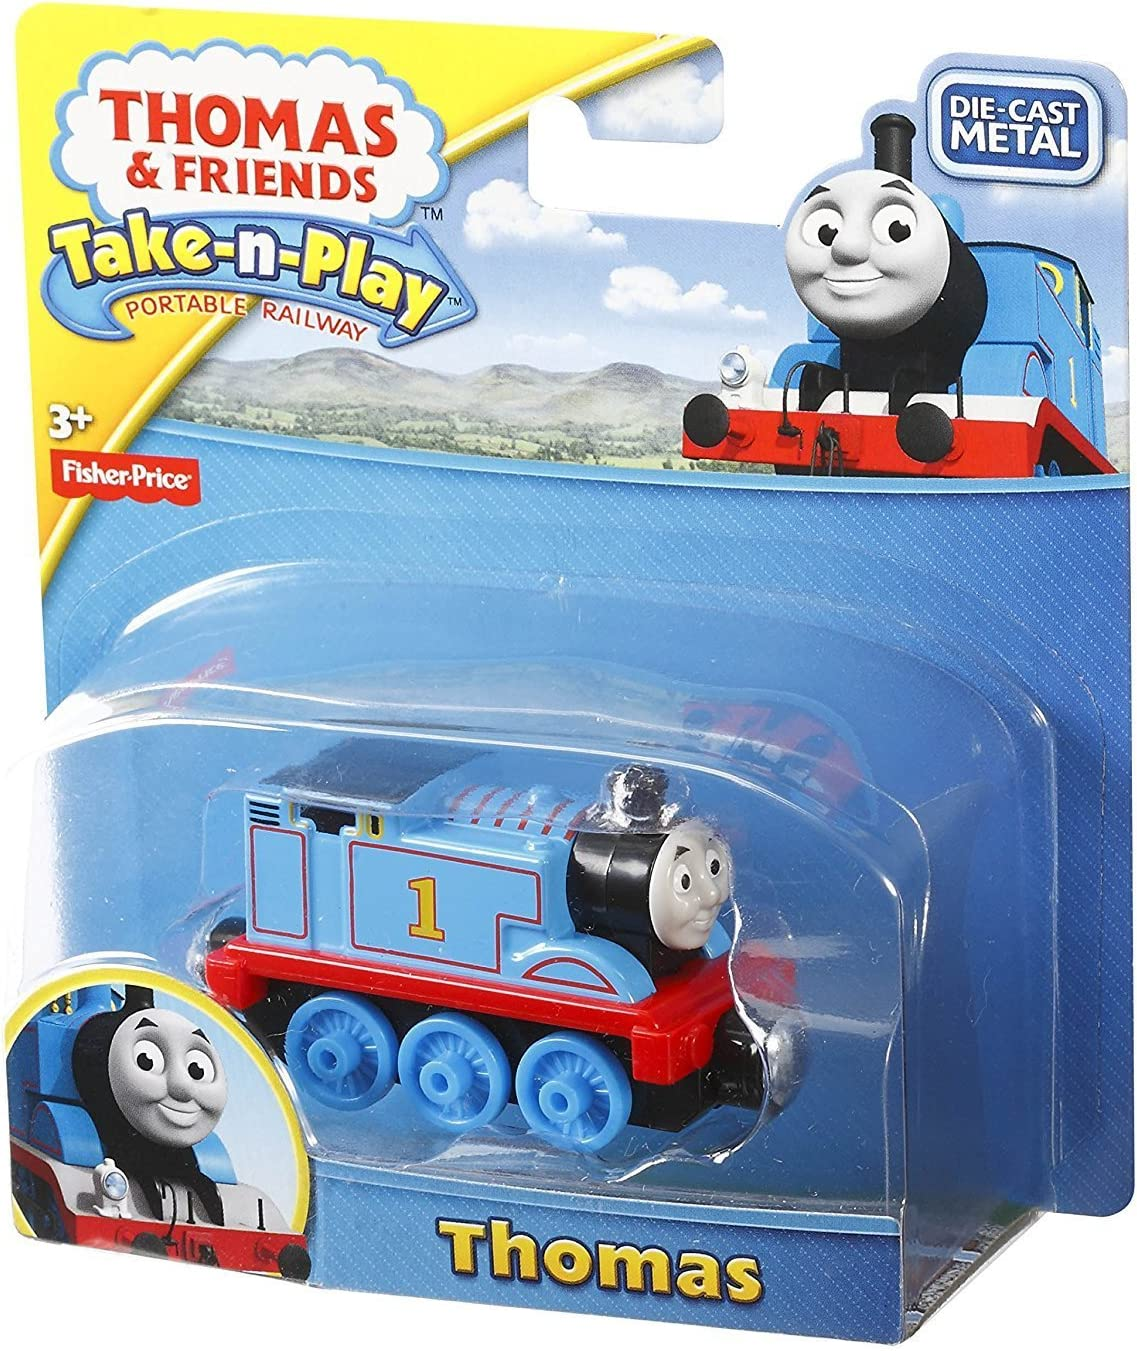 TAKE ALONG /& TAKE-N-PLAY THOMAS THE TANK ENGINE /& FRIENDS CHARACTERS SELECTION